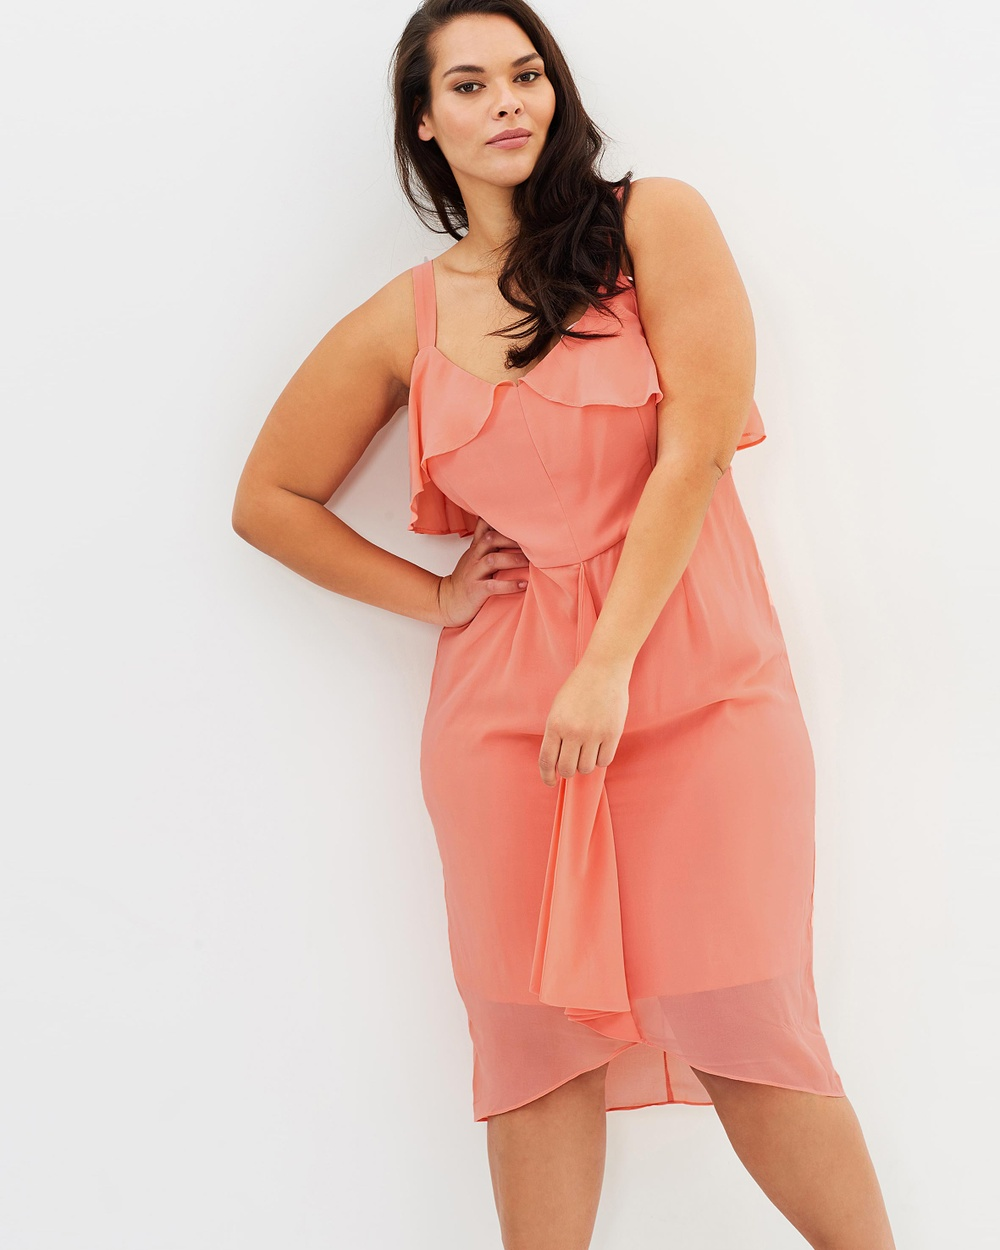 Cooper St CS CURVY Candice Drape Dress Dresses Peach CS CURVY Candice Drape Dress